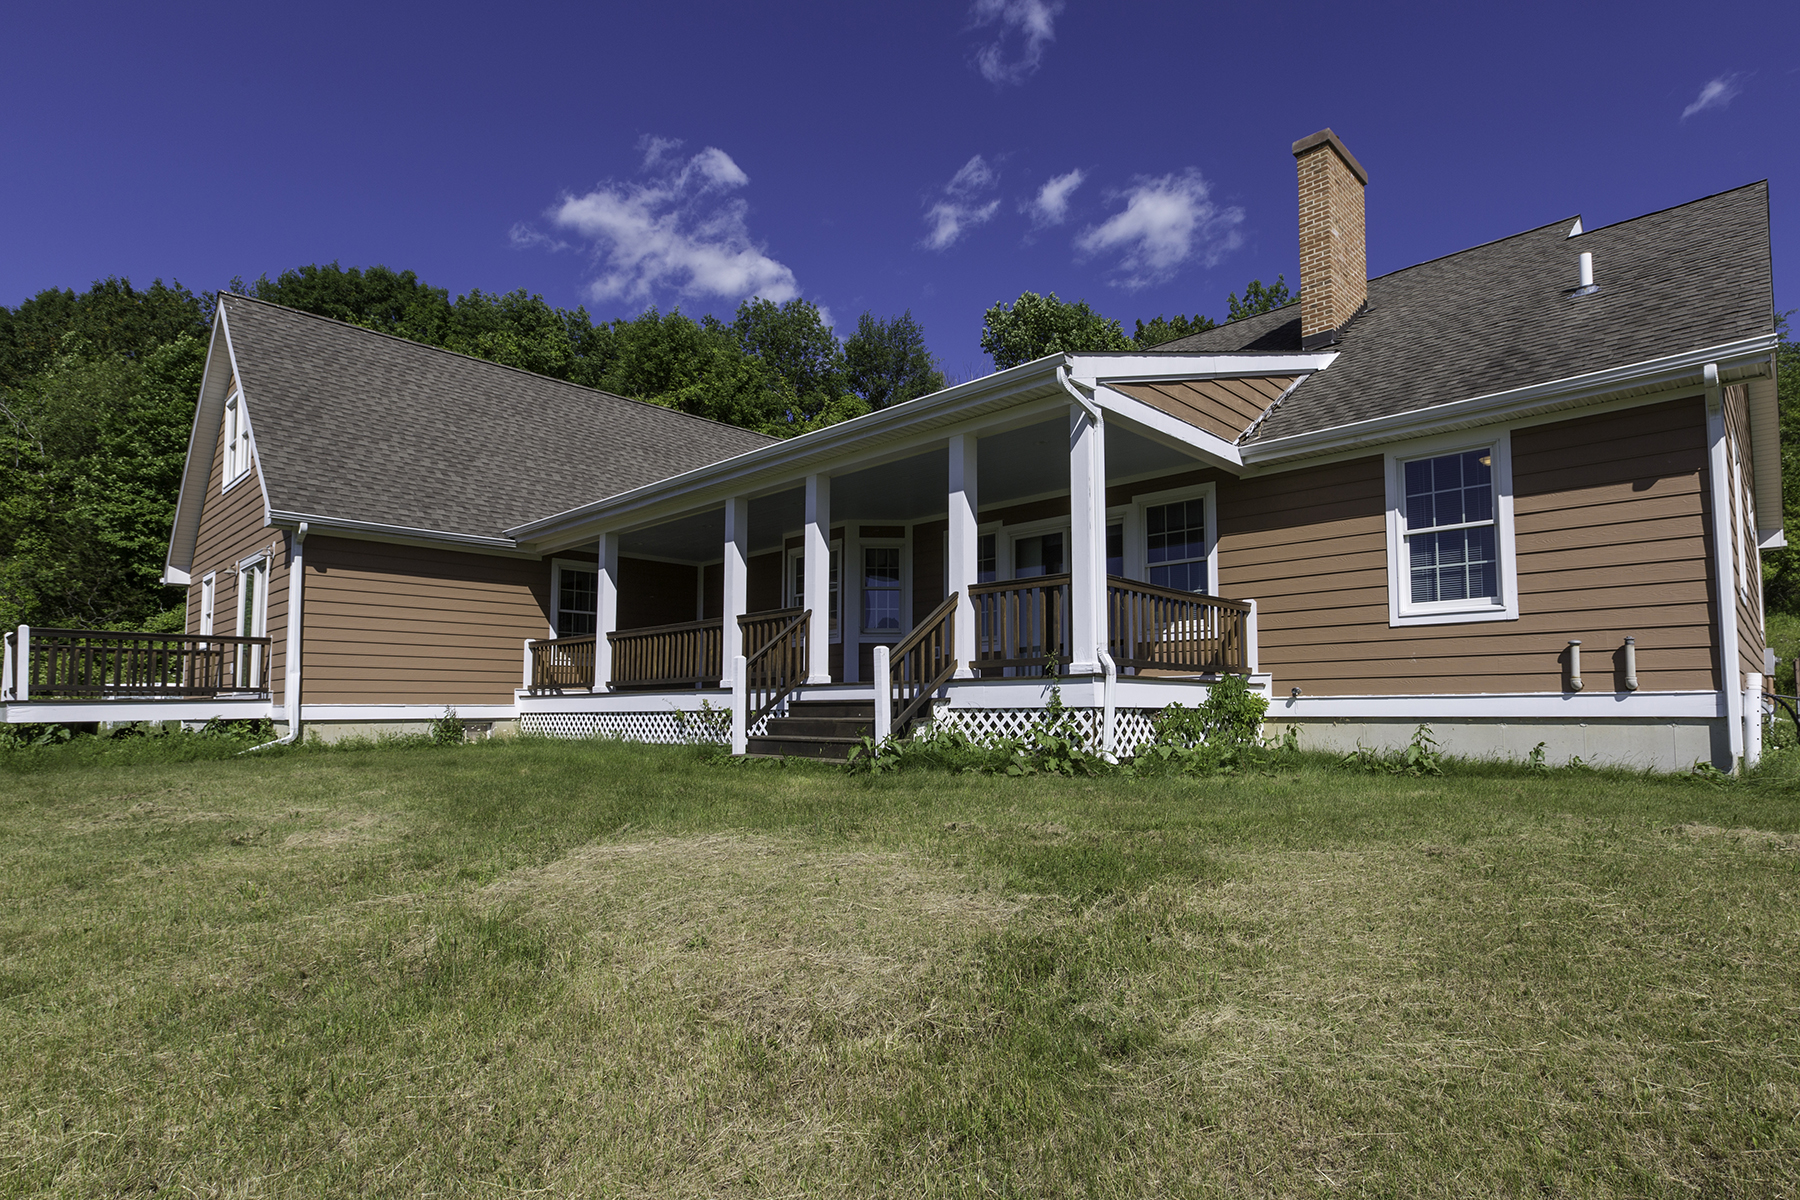 Single Family Home for Sale at Custom Built Cape with Beautiful Country View 61 Link Rd Ghent, New York 12075 United States